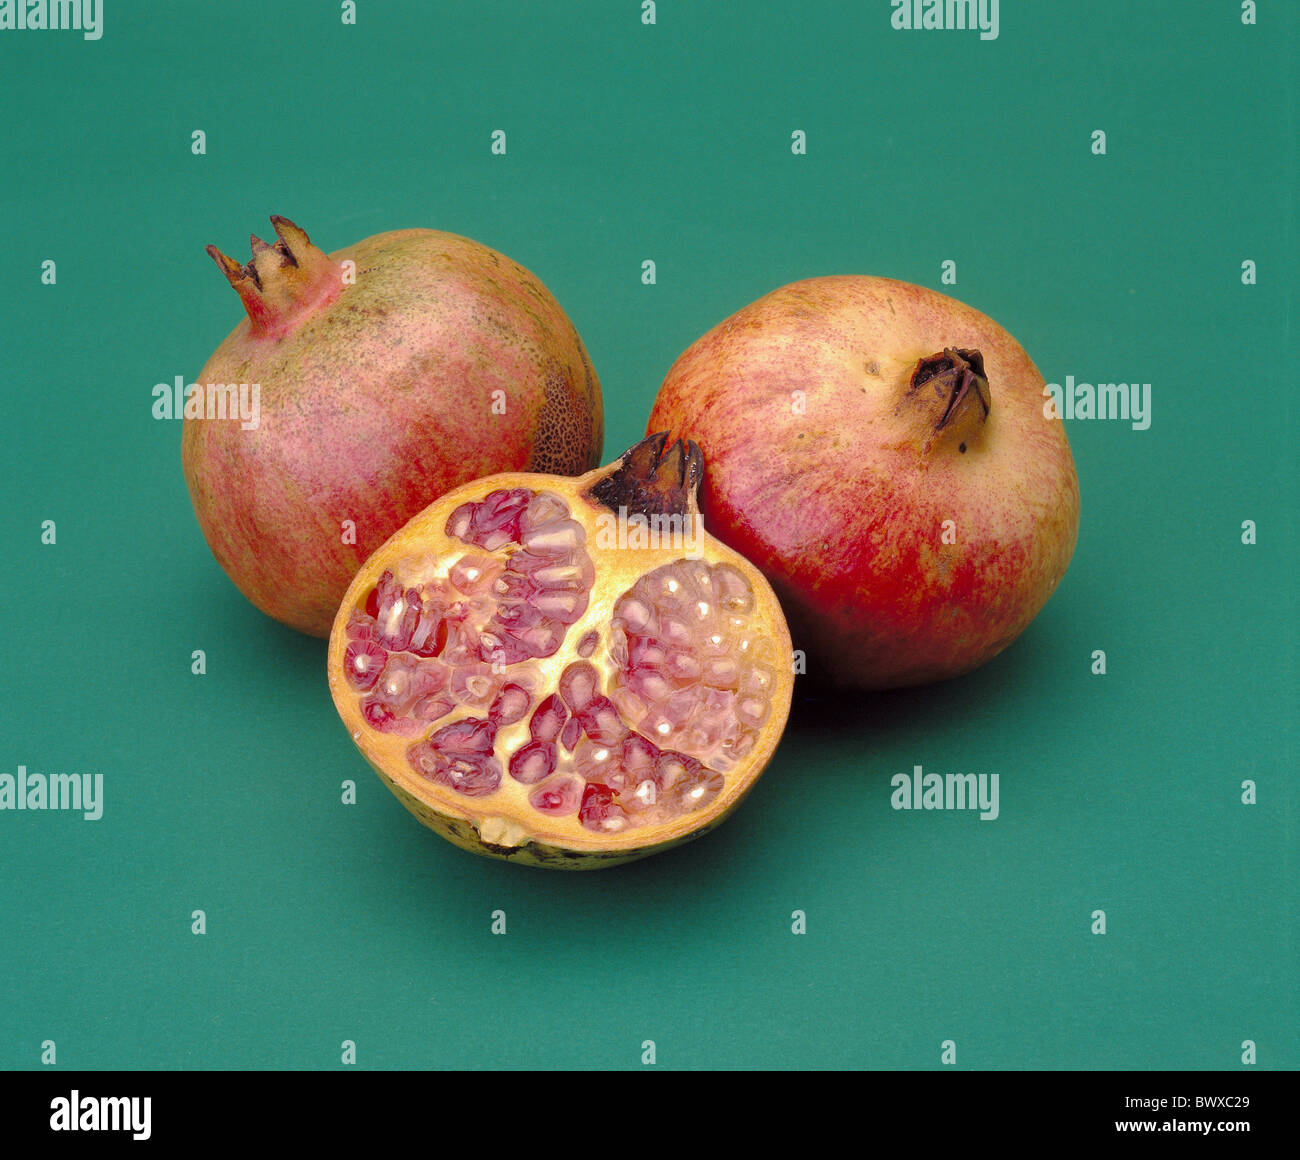 fruits pomegranates three completely cut open cores food eating - Stock Image